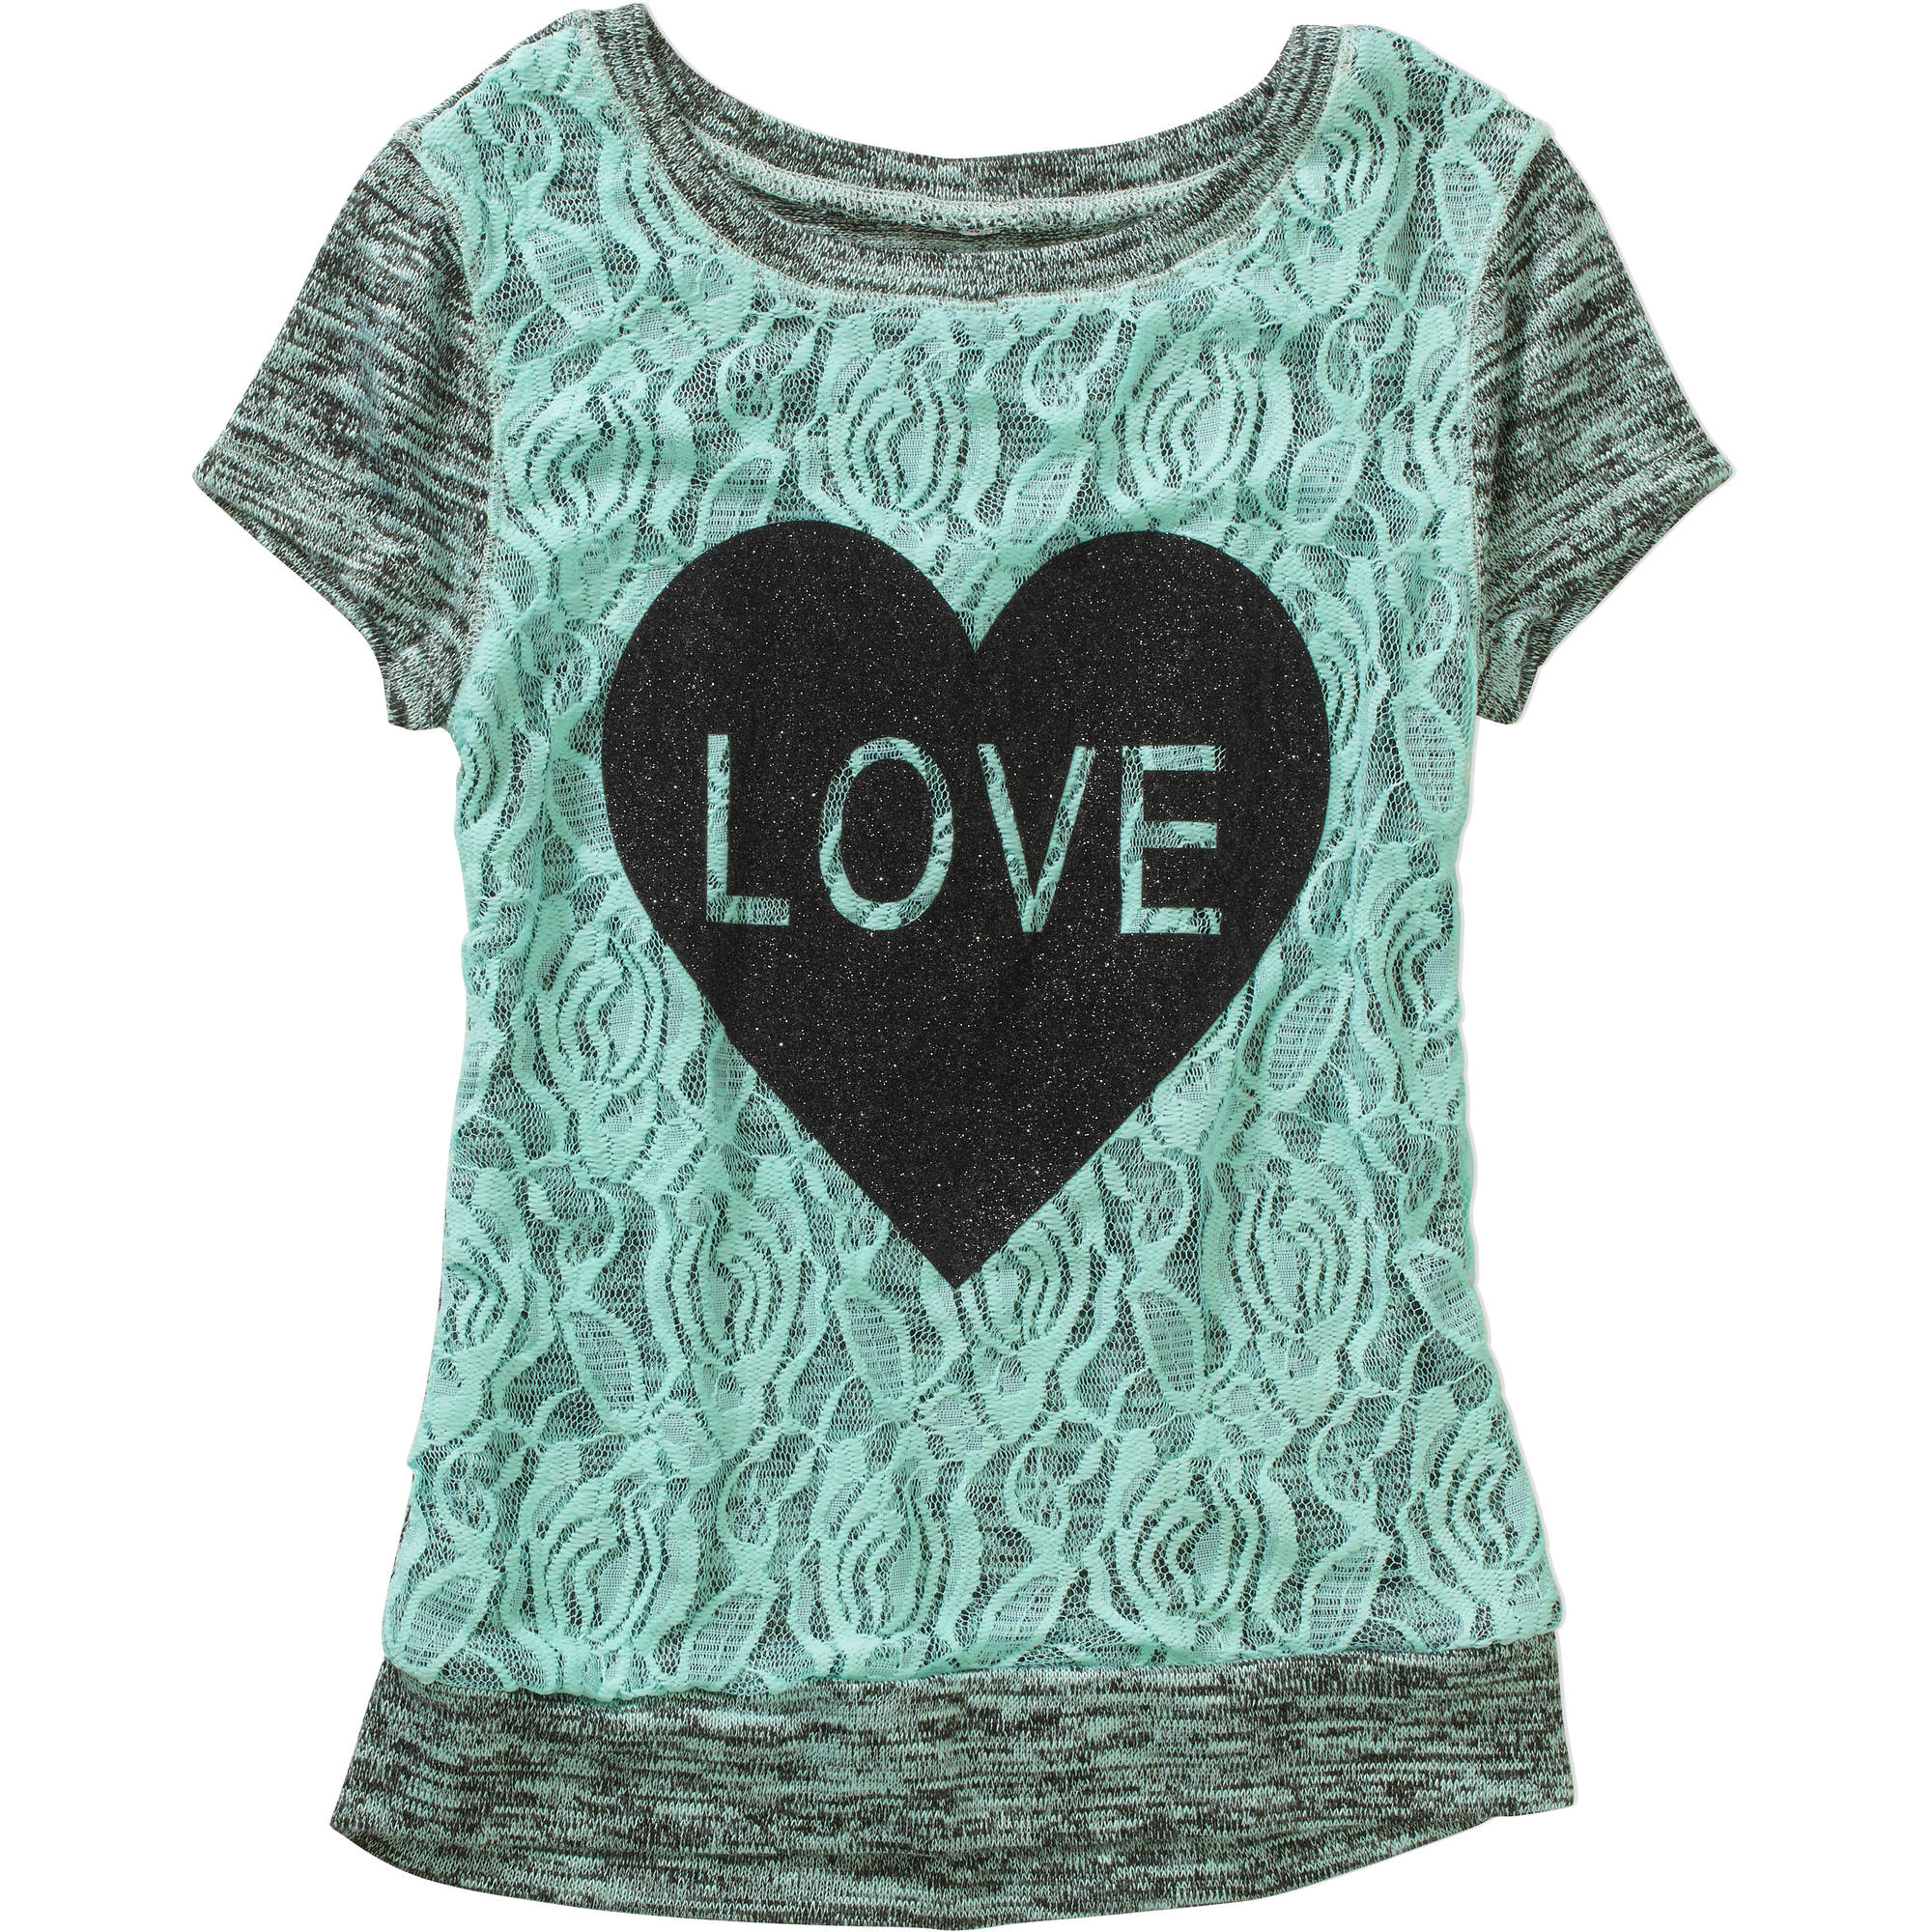 Miss Chievous Girls' Crochet Overlay Love Heart Top